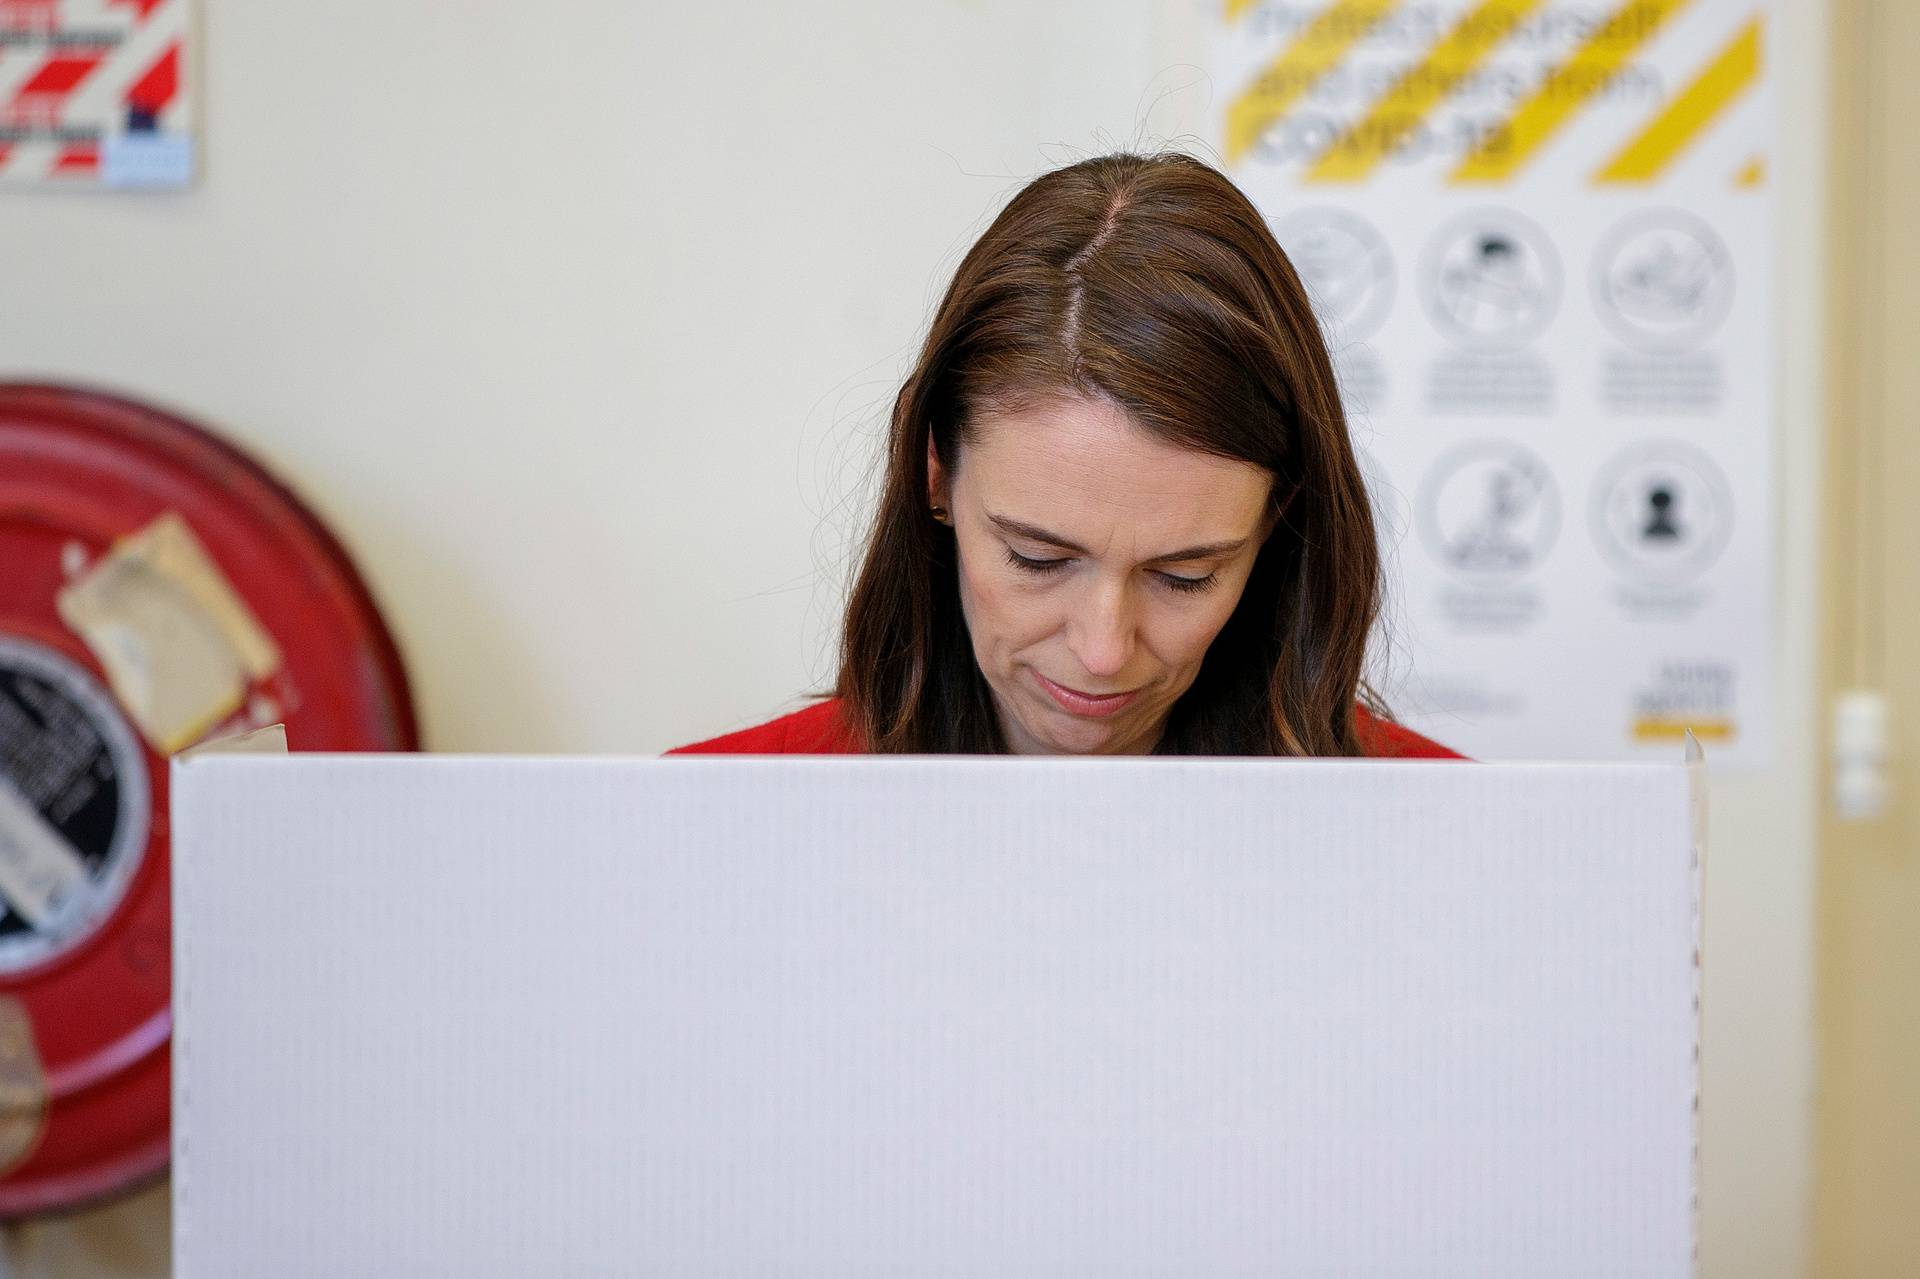 New Zealand Prime Minister Ardern casts her general election vote in Auckland